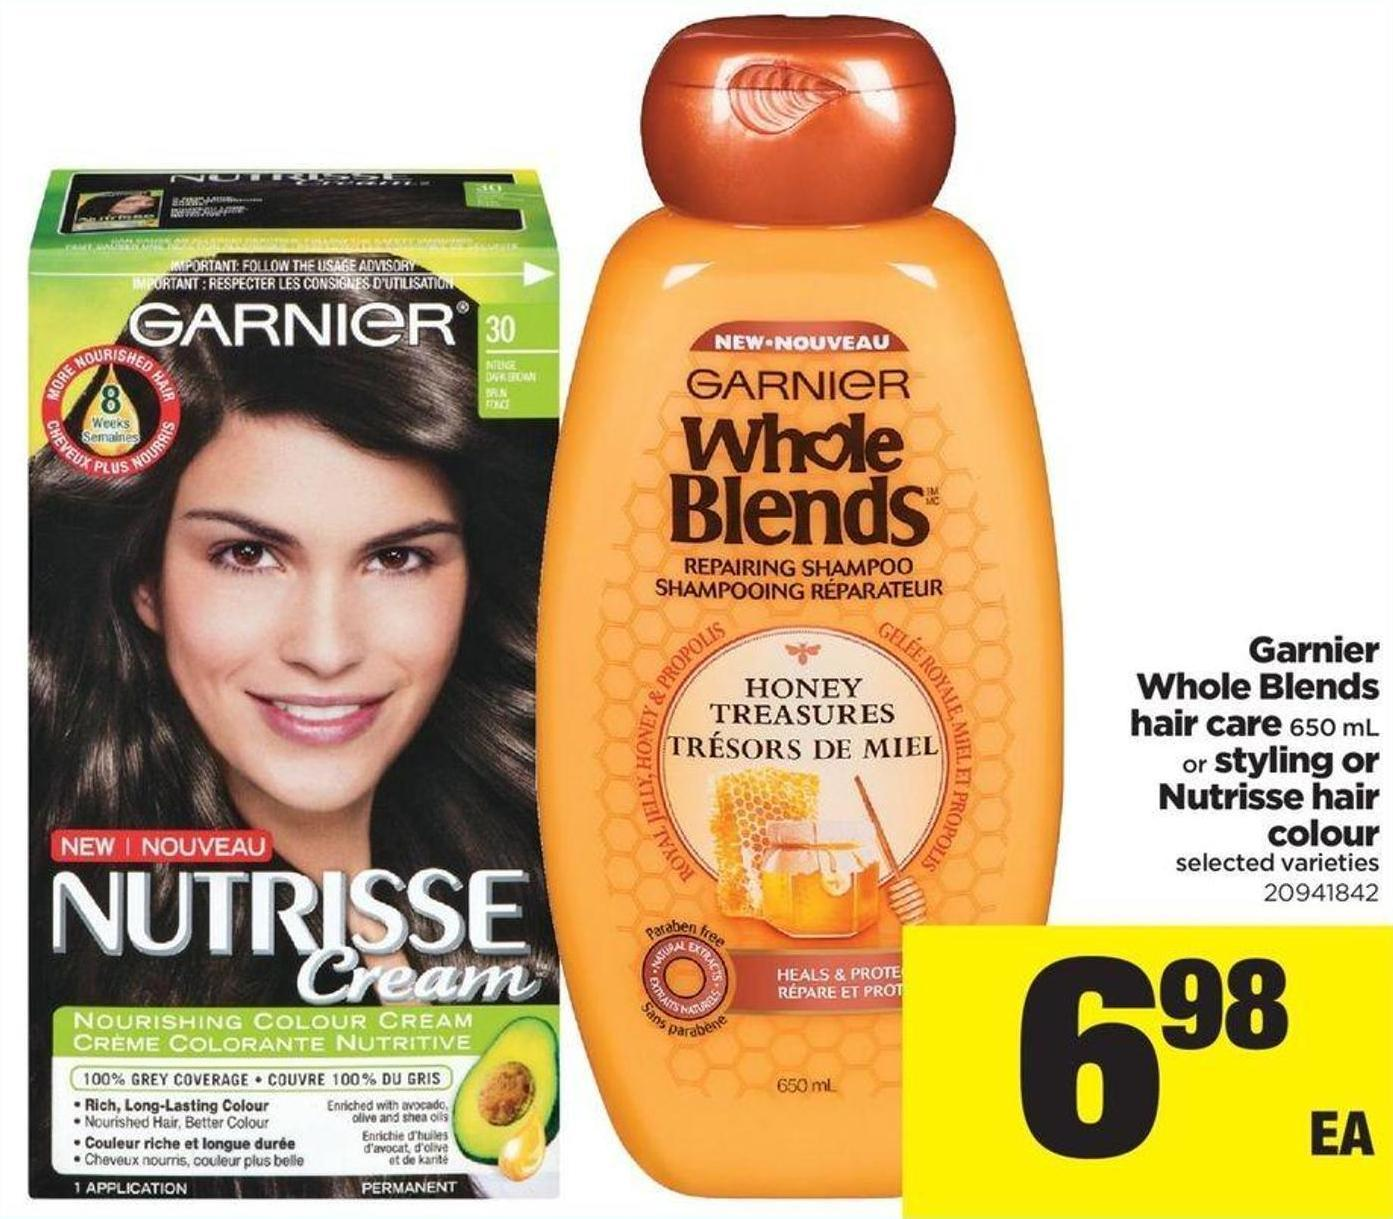 Garnier Whole Blends Hair Care 650 Ml Or Styling Or Nutrisse Hair Colour